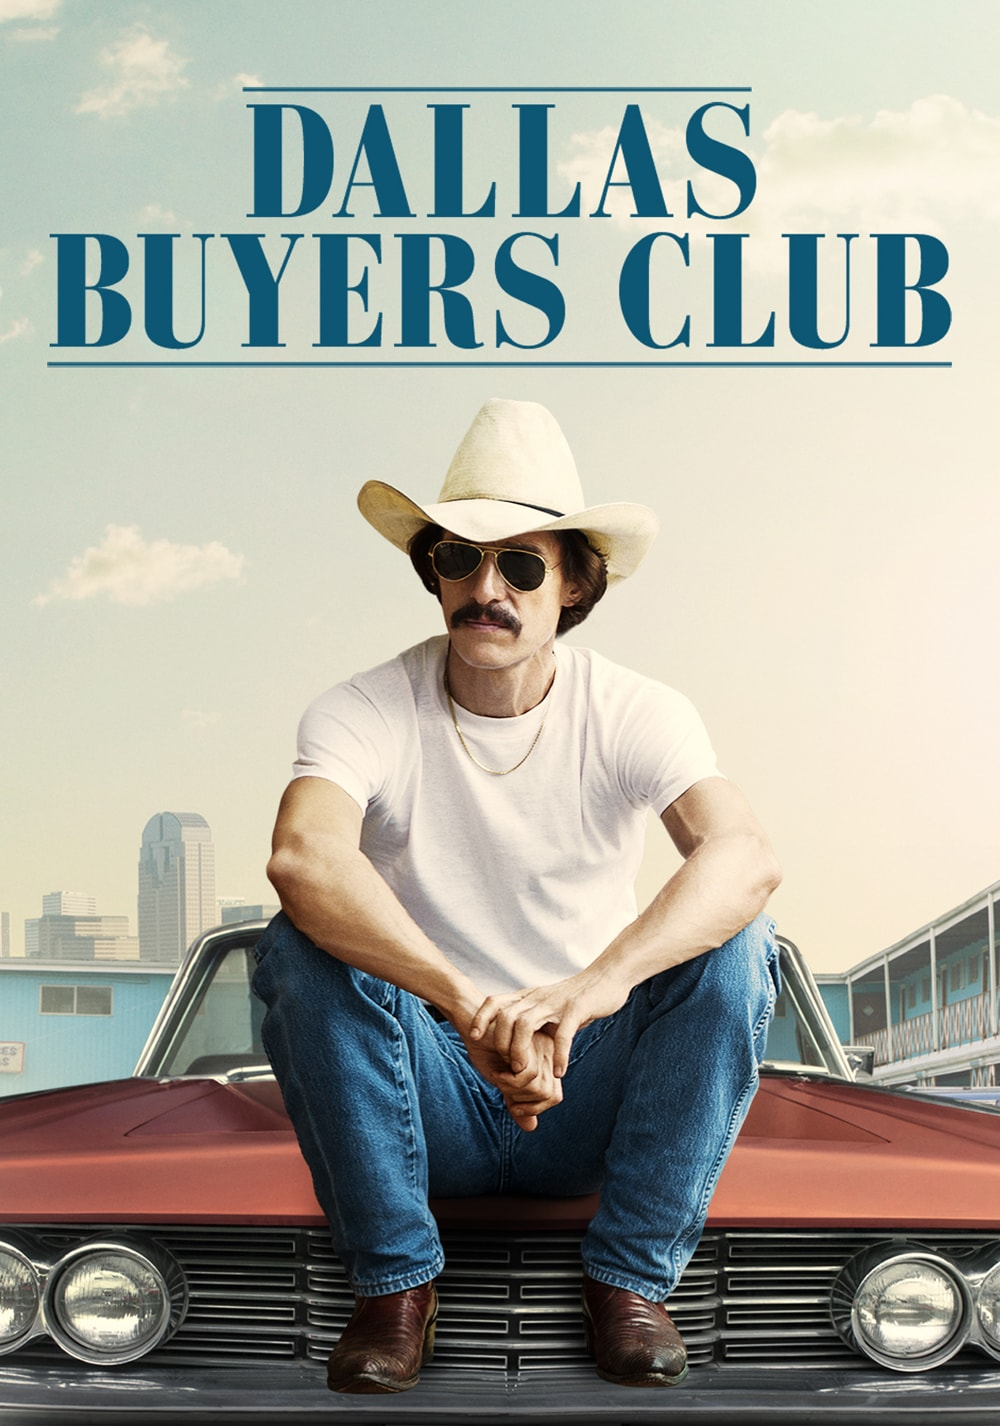 Dallas Buyers Club Backgrounds